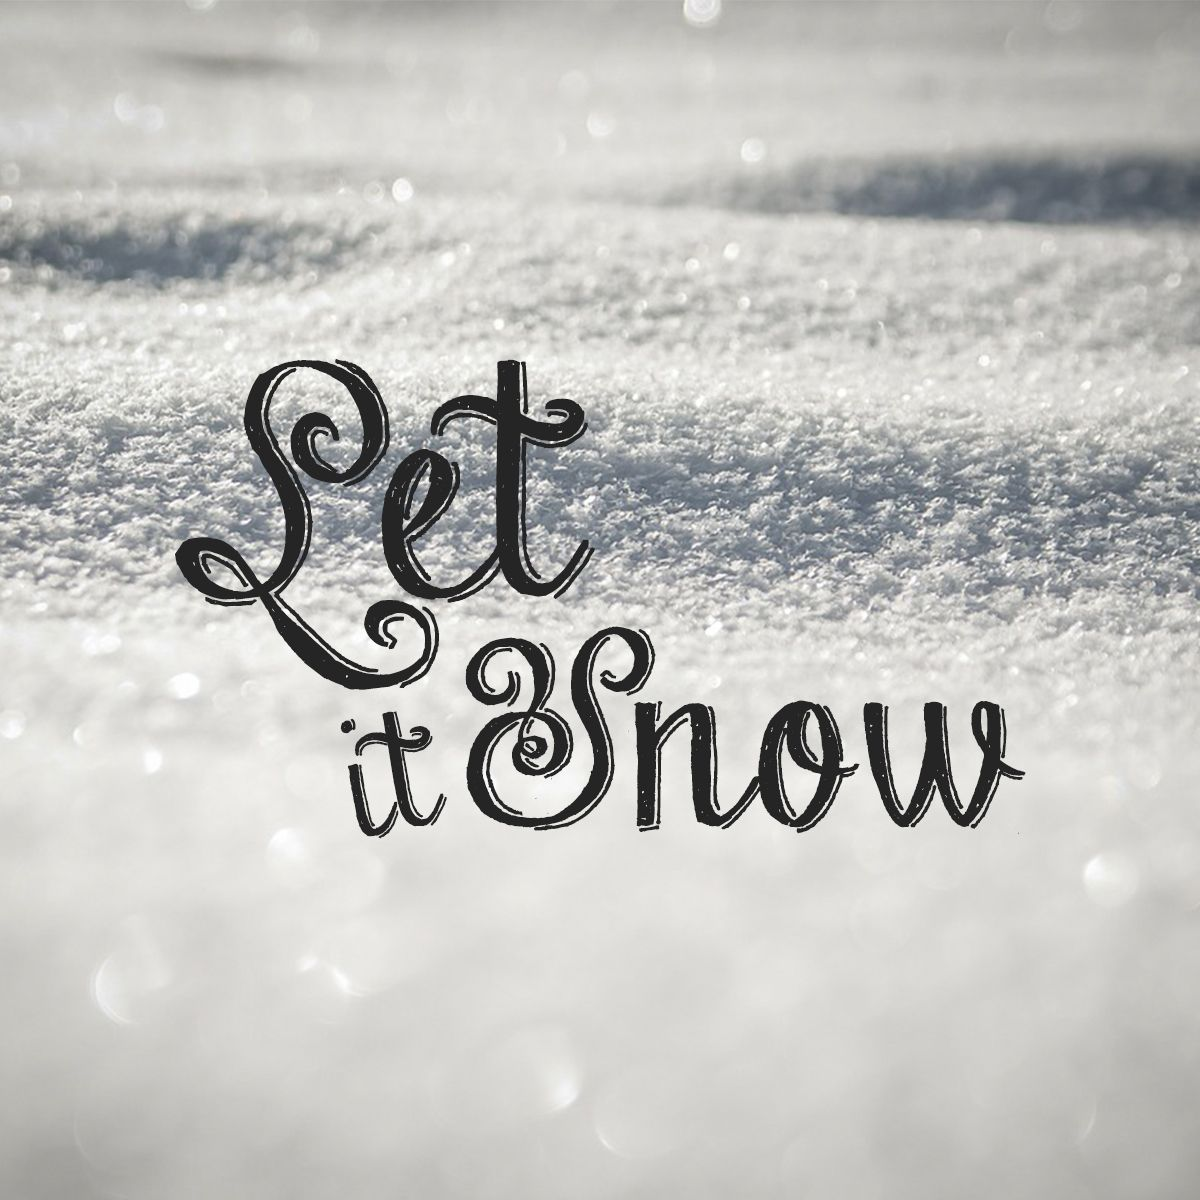 Oh the weather outside is frightful...so we're closing a bit early. See you tomorrow at noon, enjoy the snow! #closingearly #letitsnow